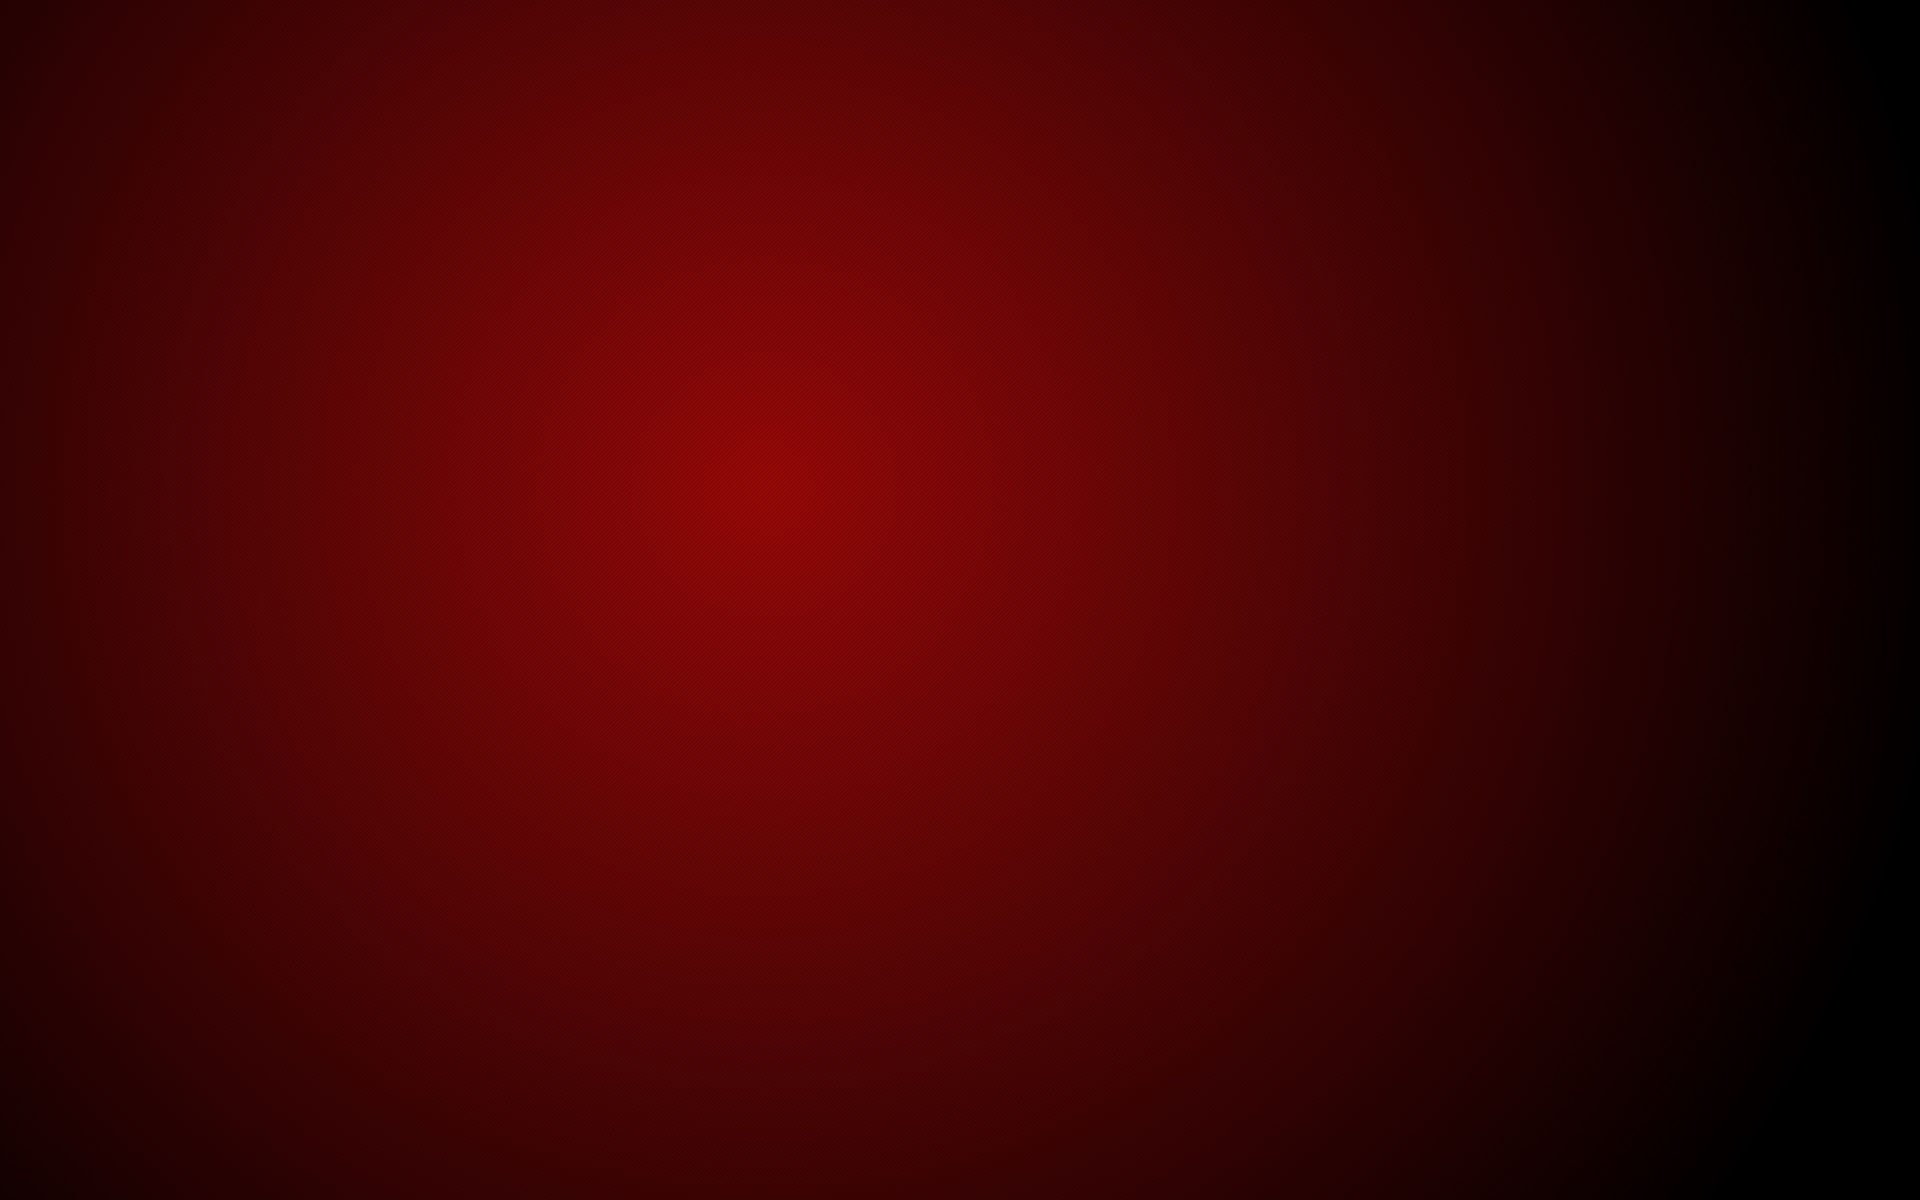 Red Wallpaper 007